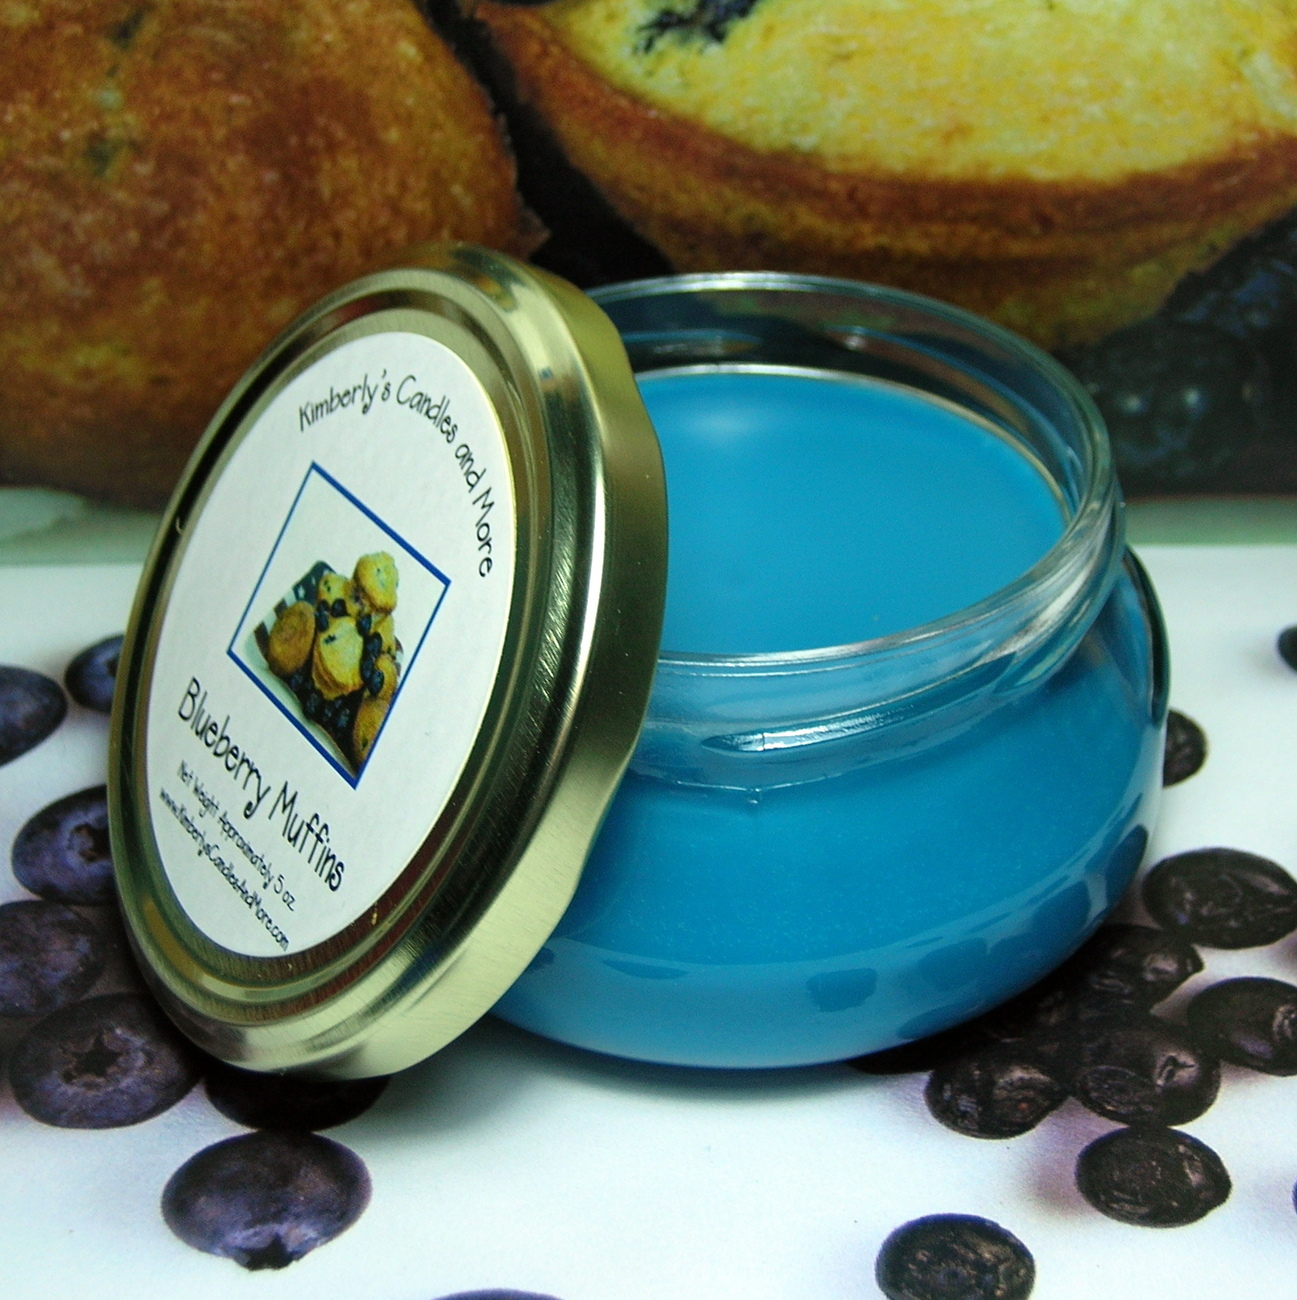 Blueberry Muffin  Wickless Candle